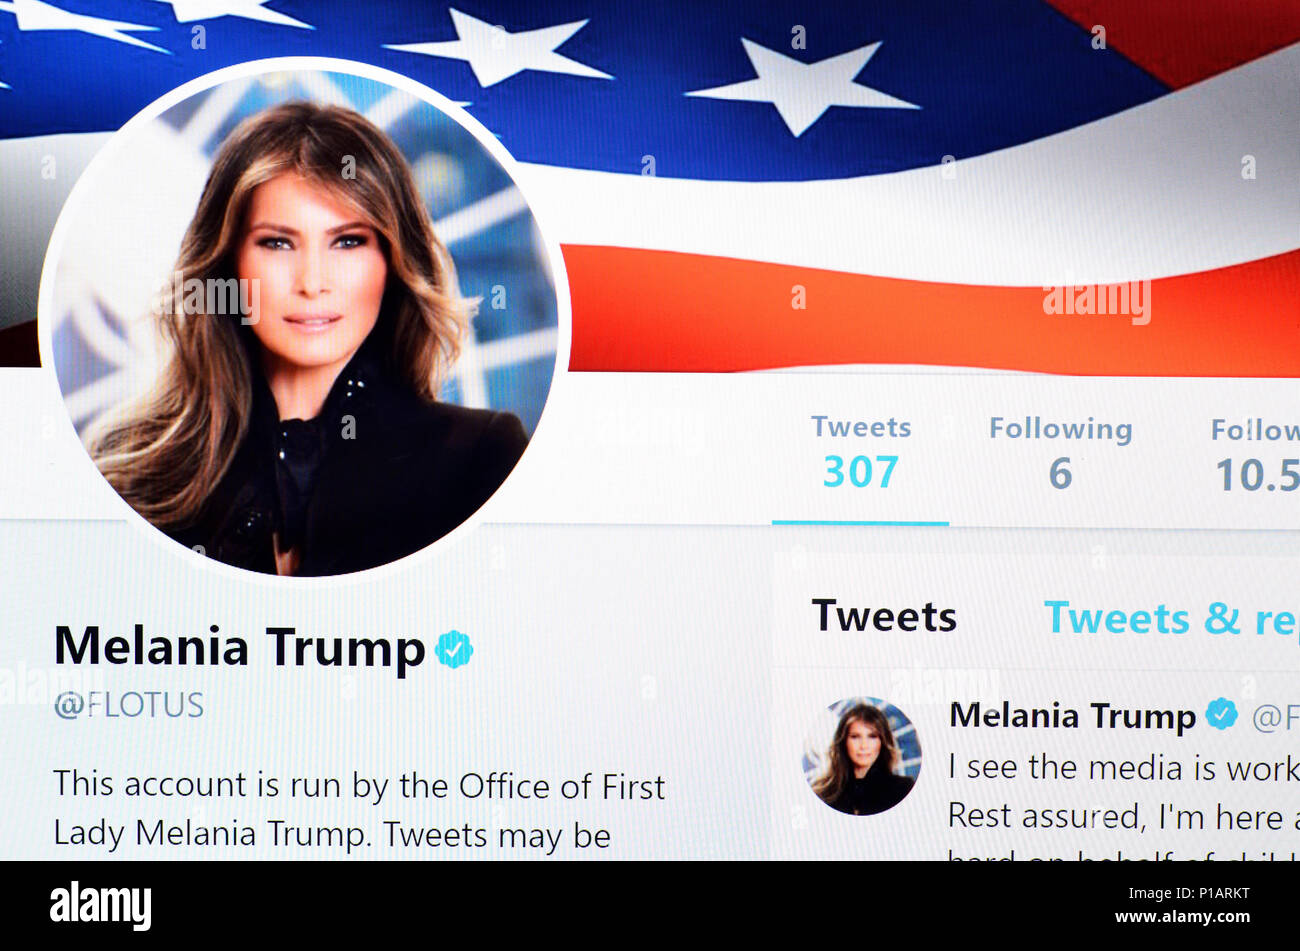 Melania Trump Twitter compte home page (Juin 2018) Photo Stock